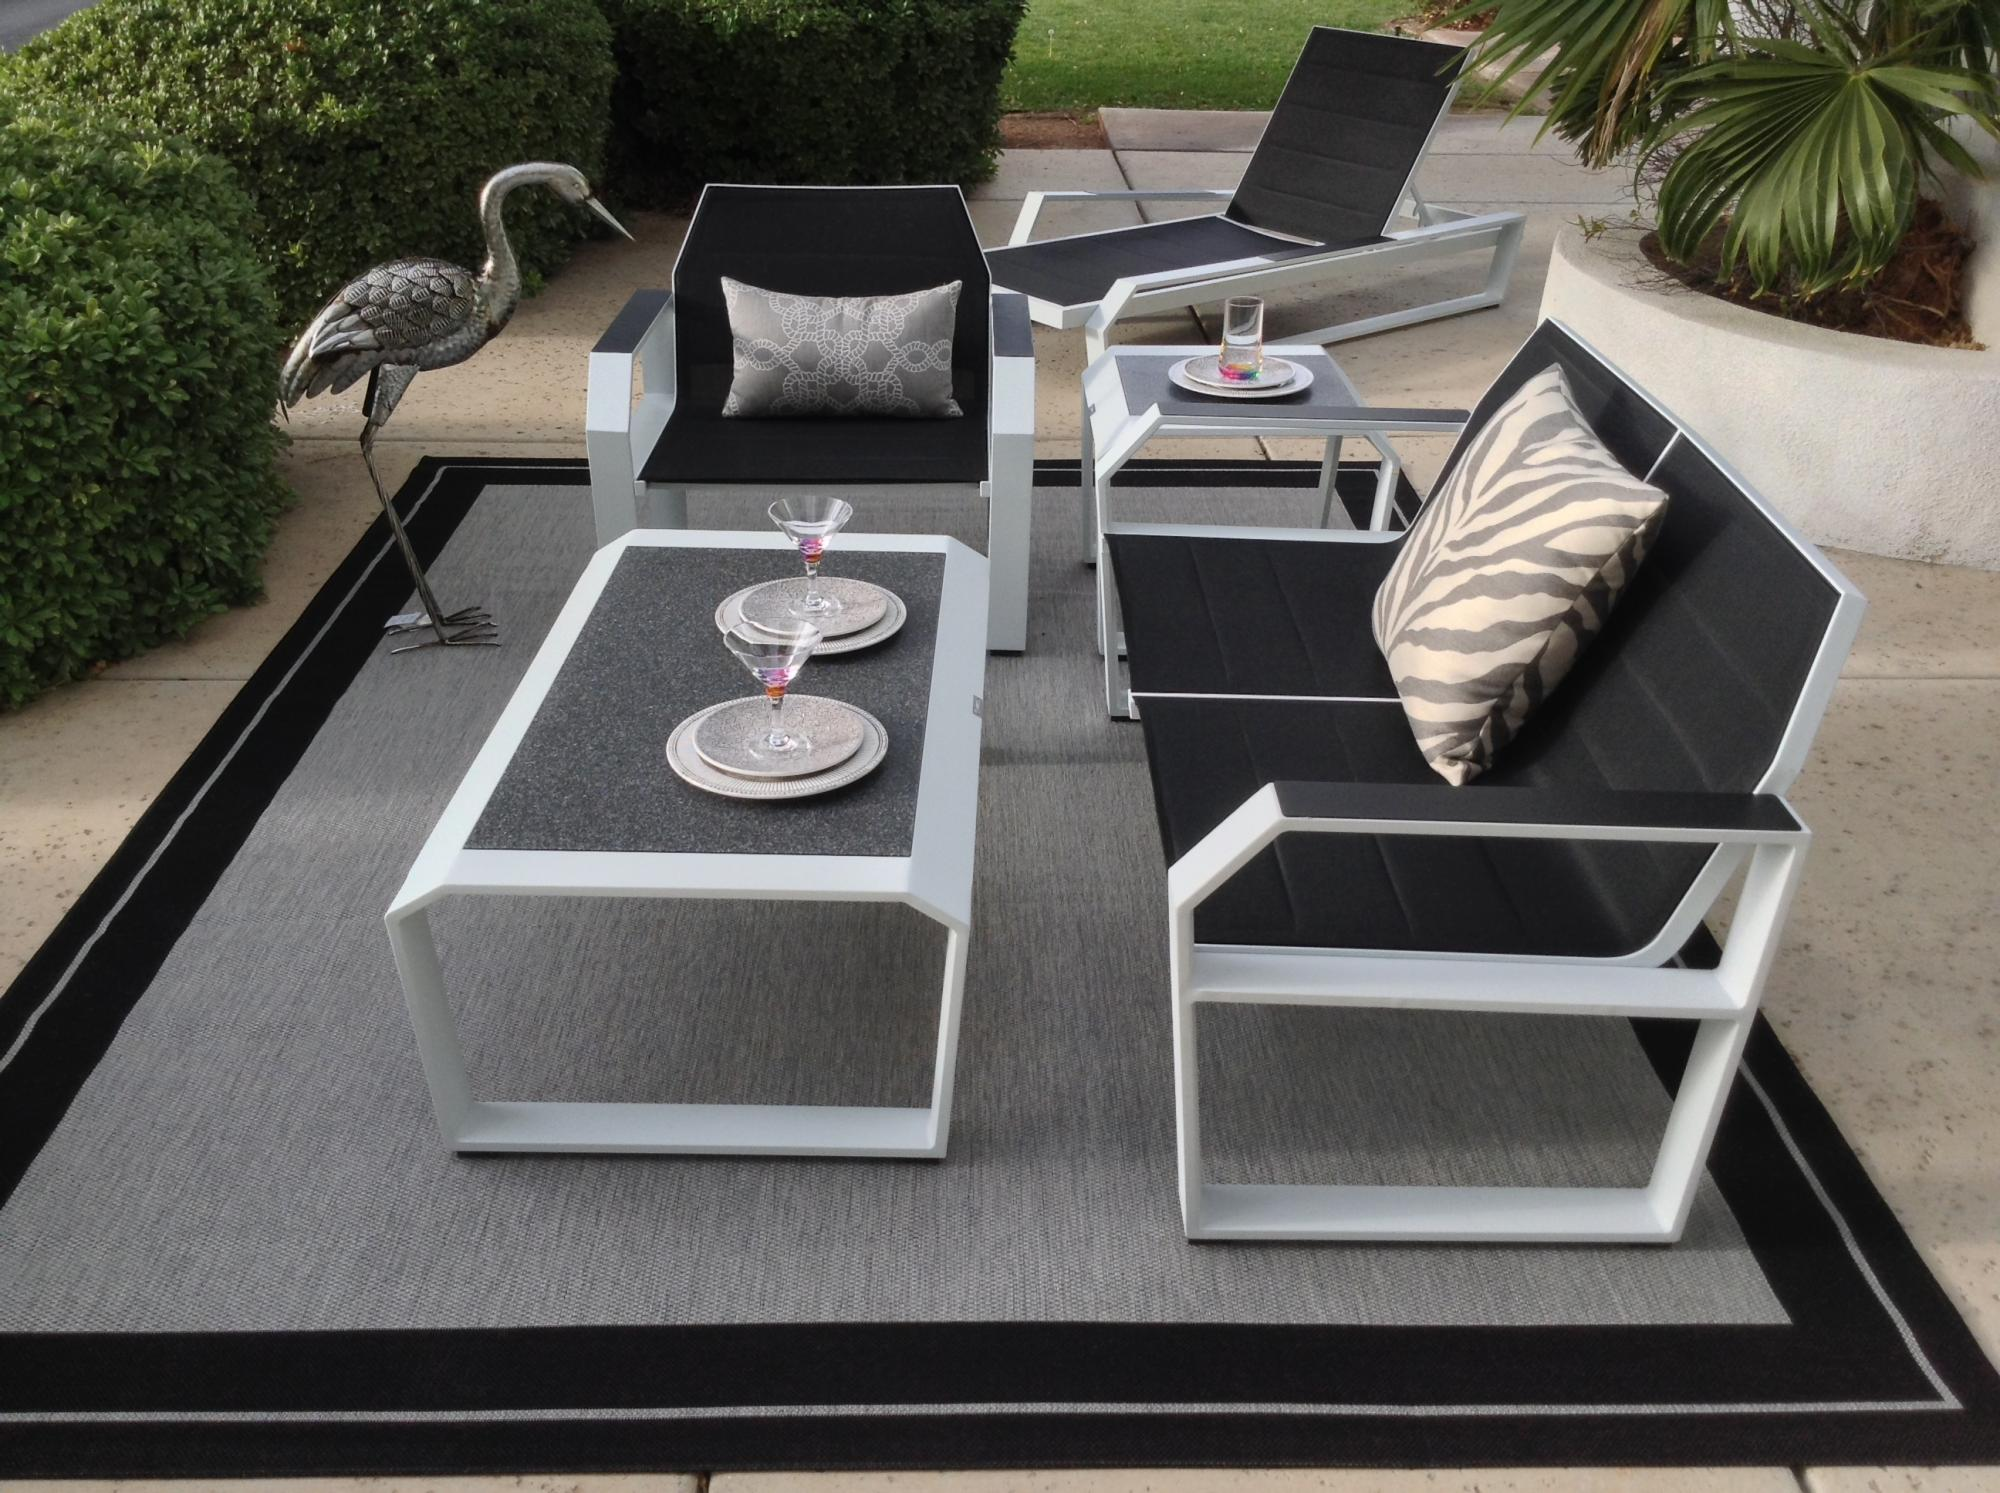 outdoor rugs mrs patio mr pool and mrs patio las vegas nv henderson nv - Garden Furniture Las Vegas